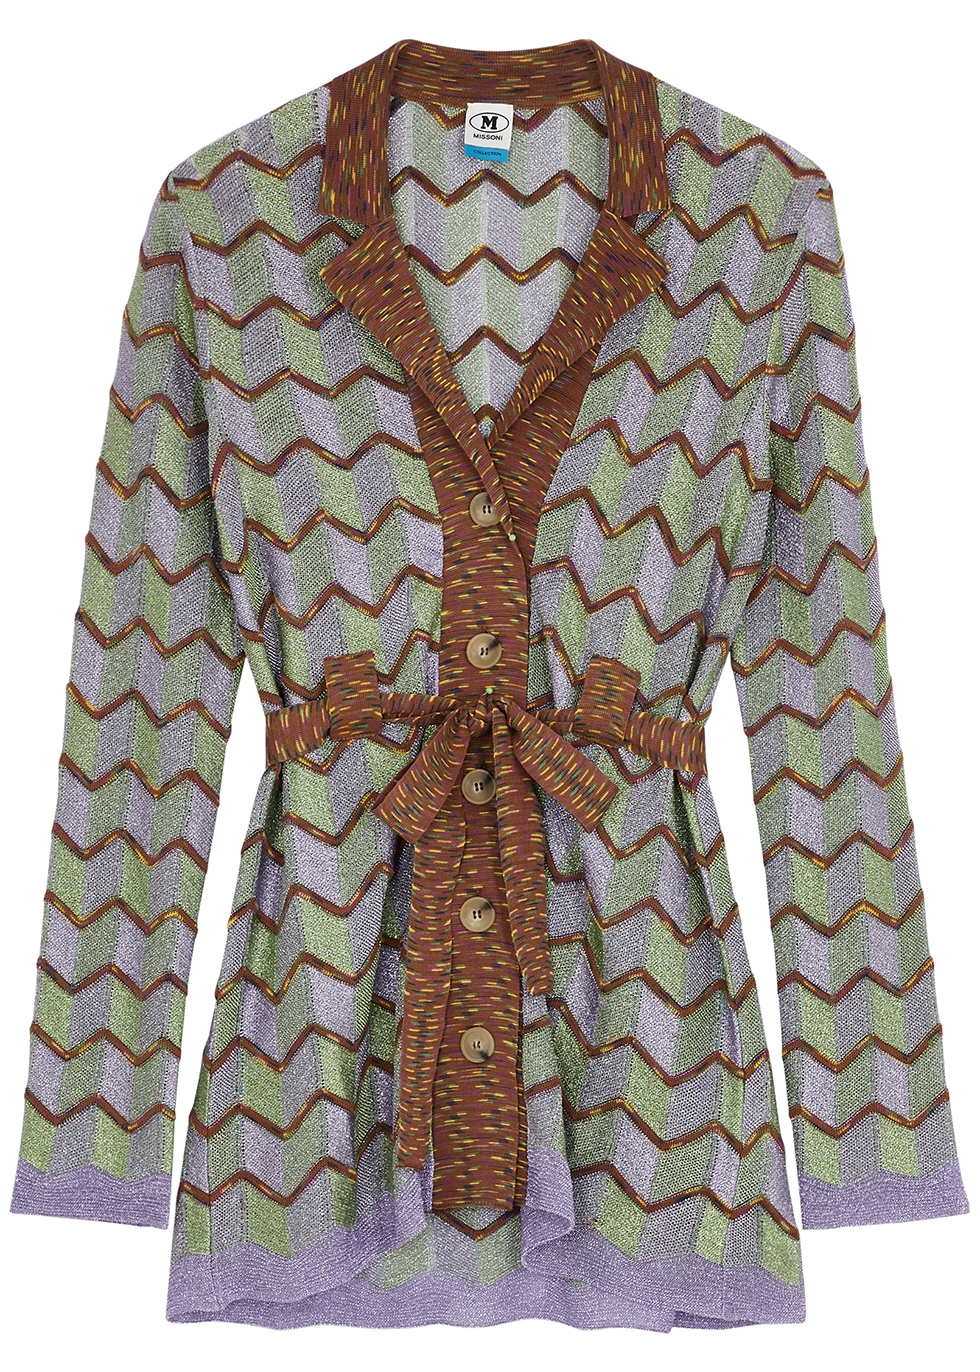 Zigzag metallic-knit cardigan